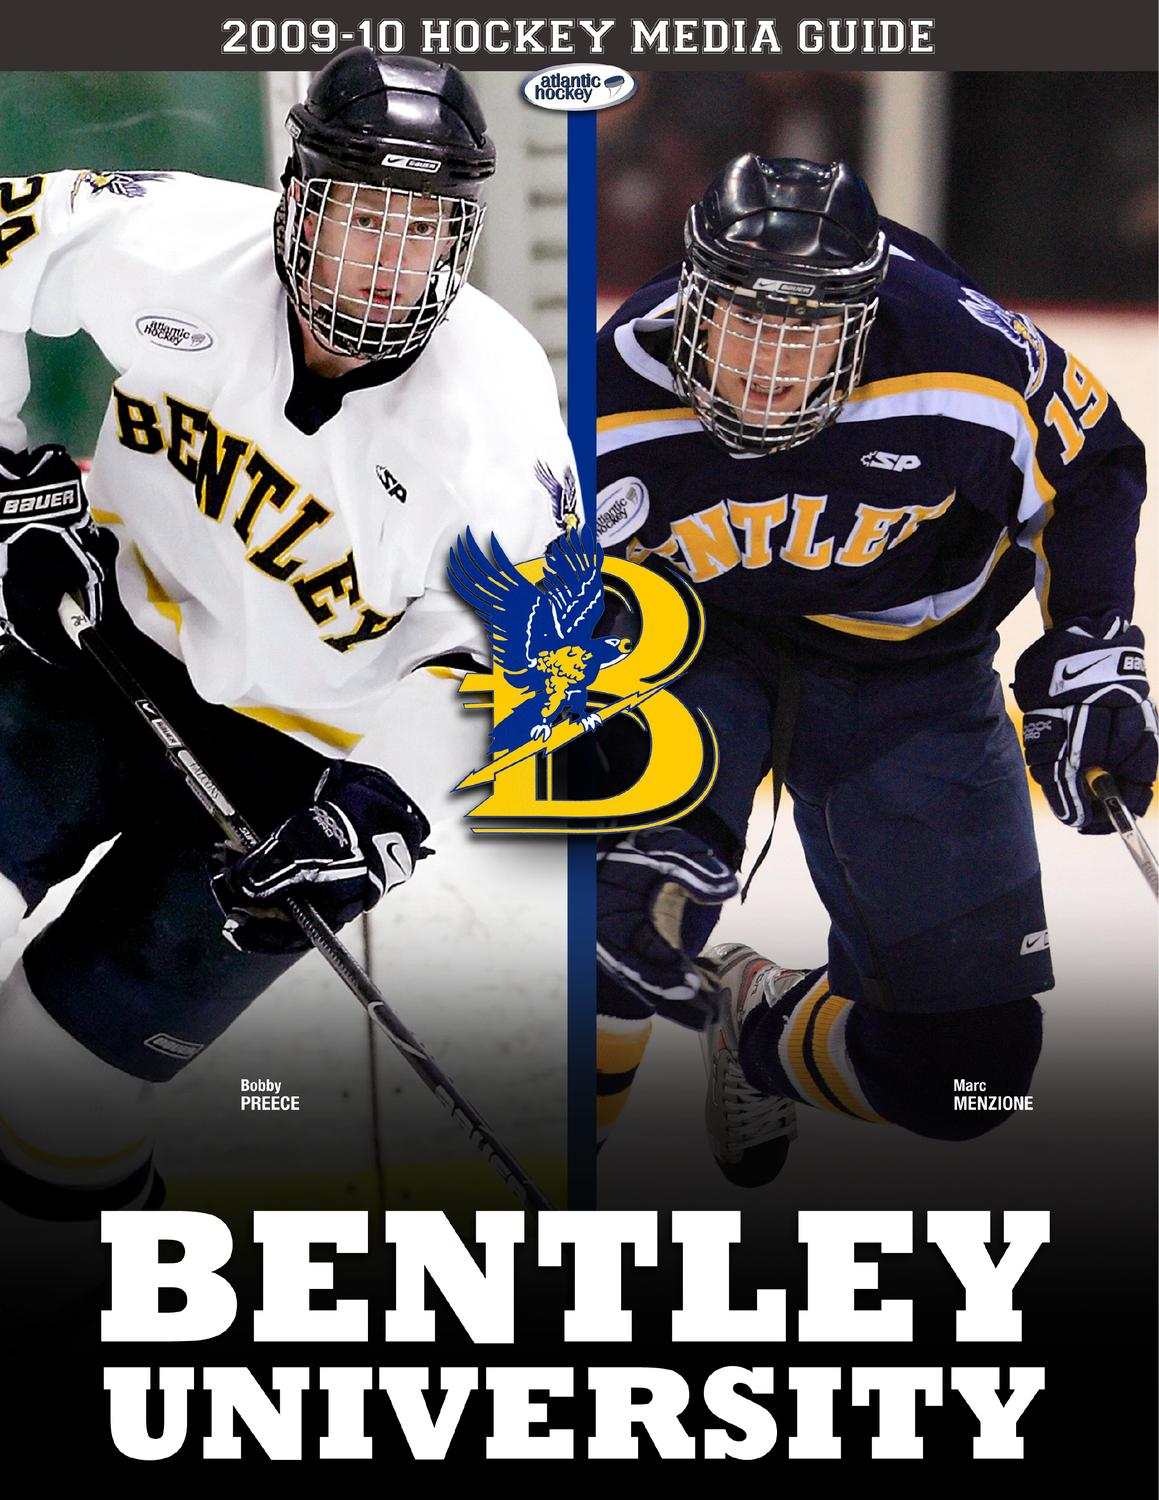 2009 10 bentley university hockey media guide by dick lipe issuu. Cars Review. Best American Auto & Cars Review